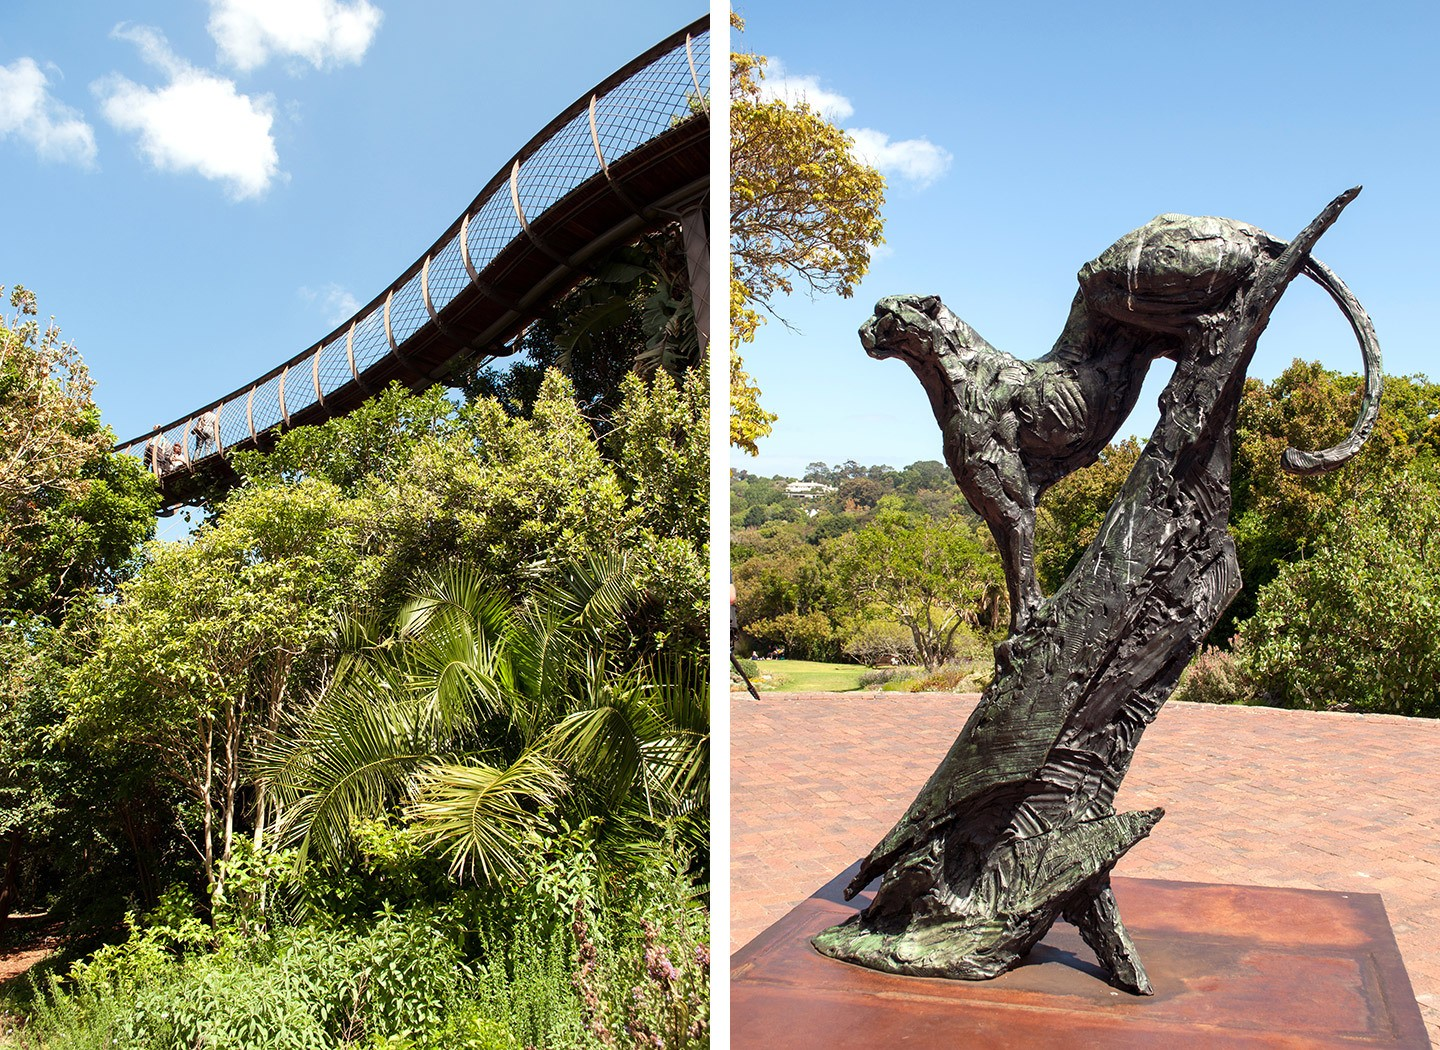 Kirstenbosch National Botanical Gardens in South Africa – tree walkway and leopard statue